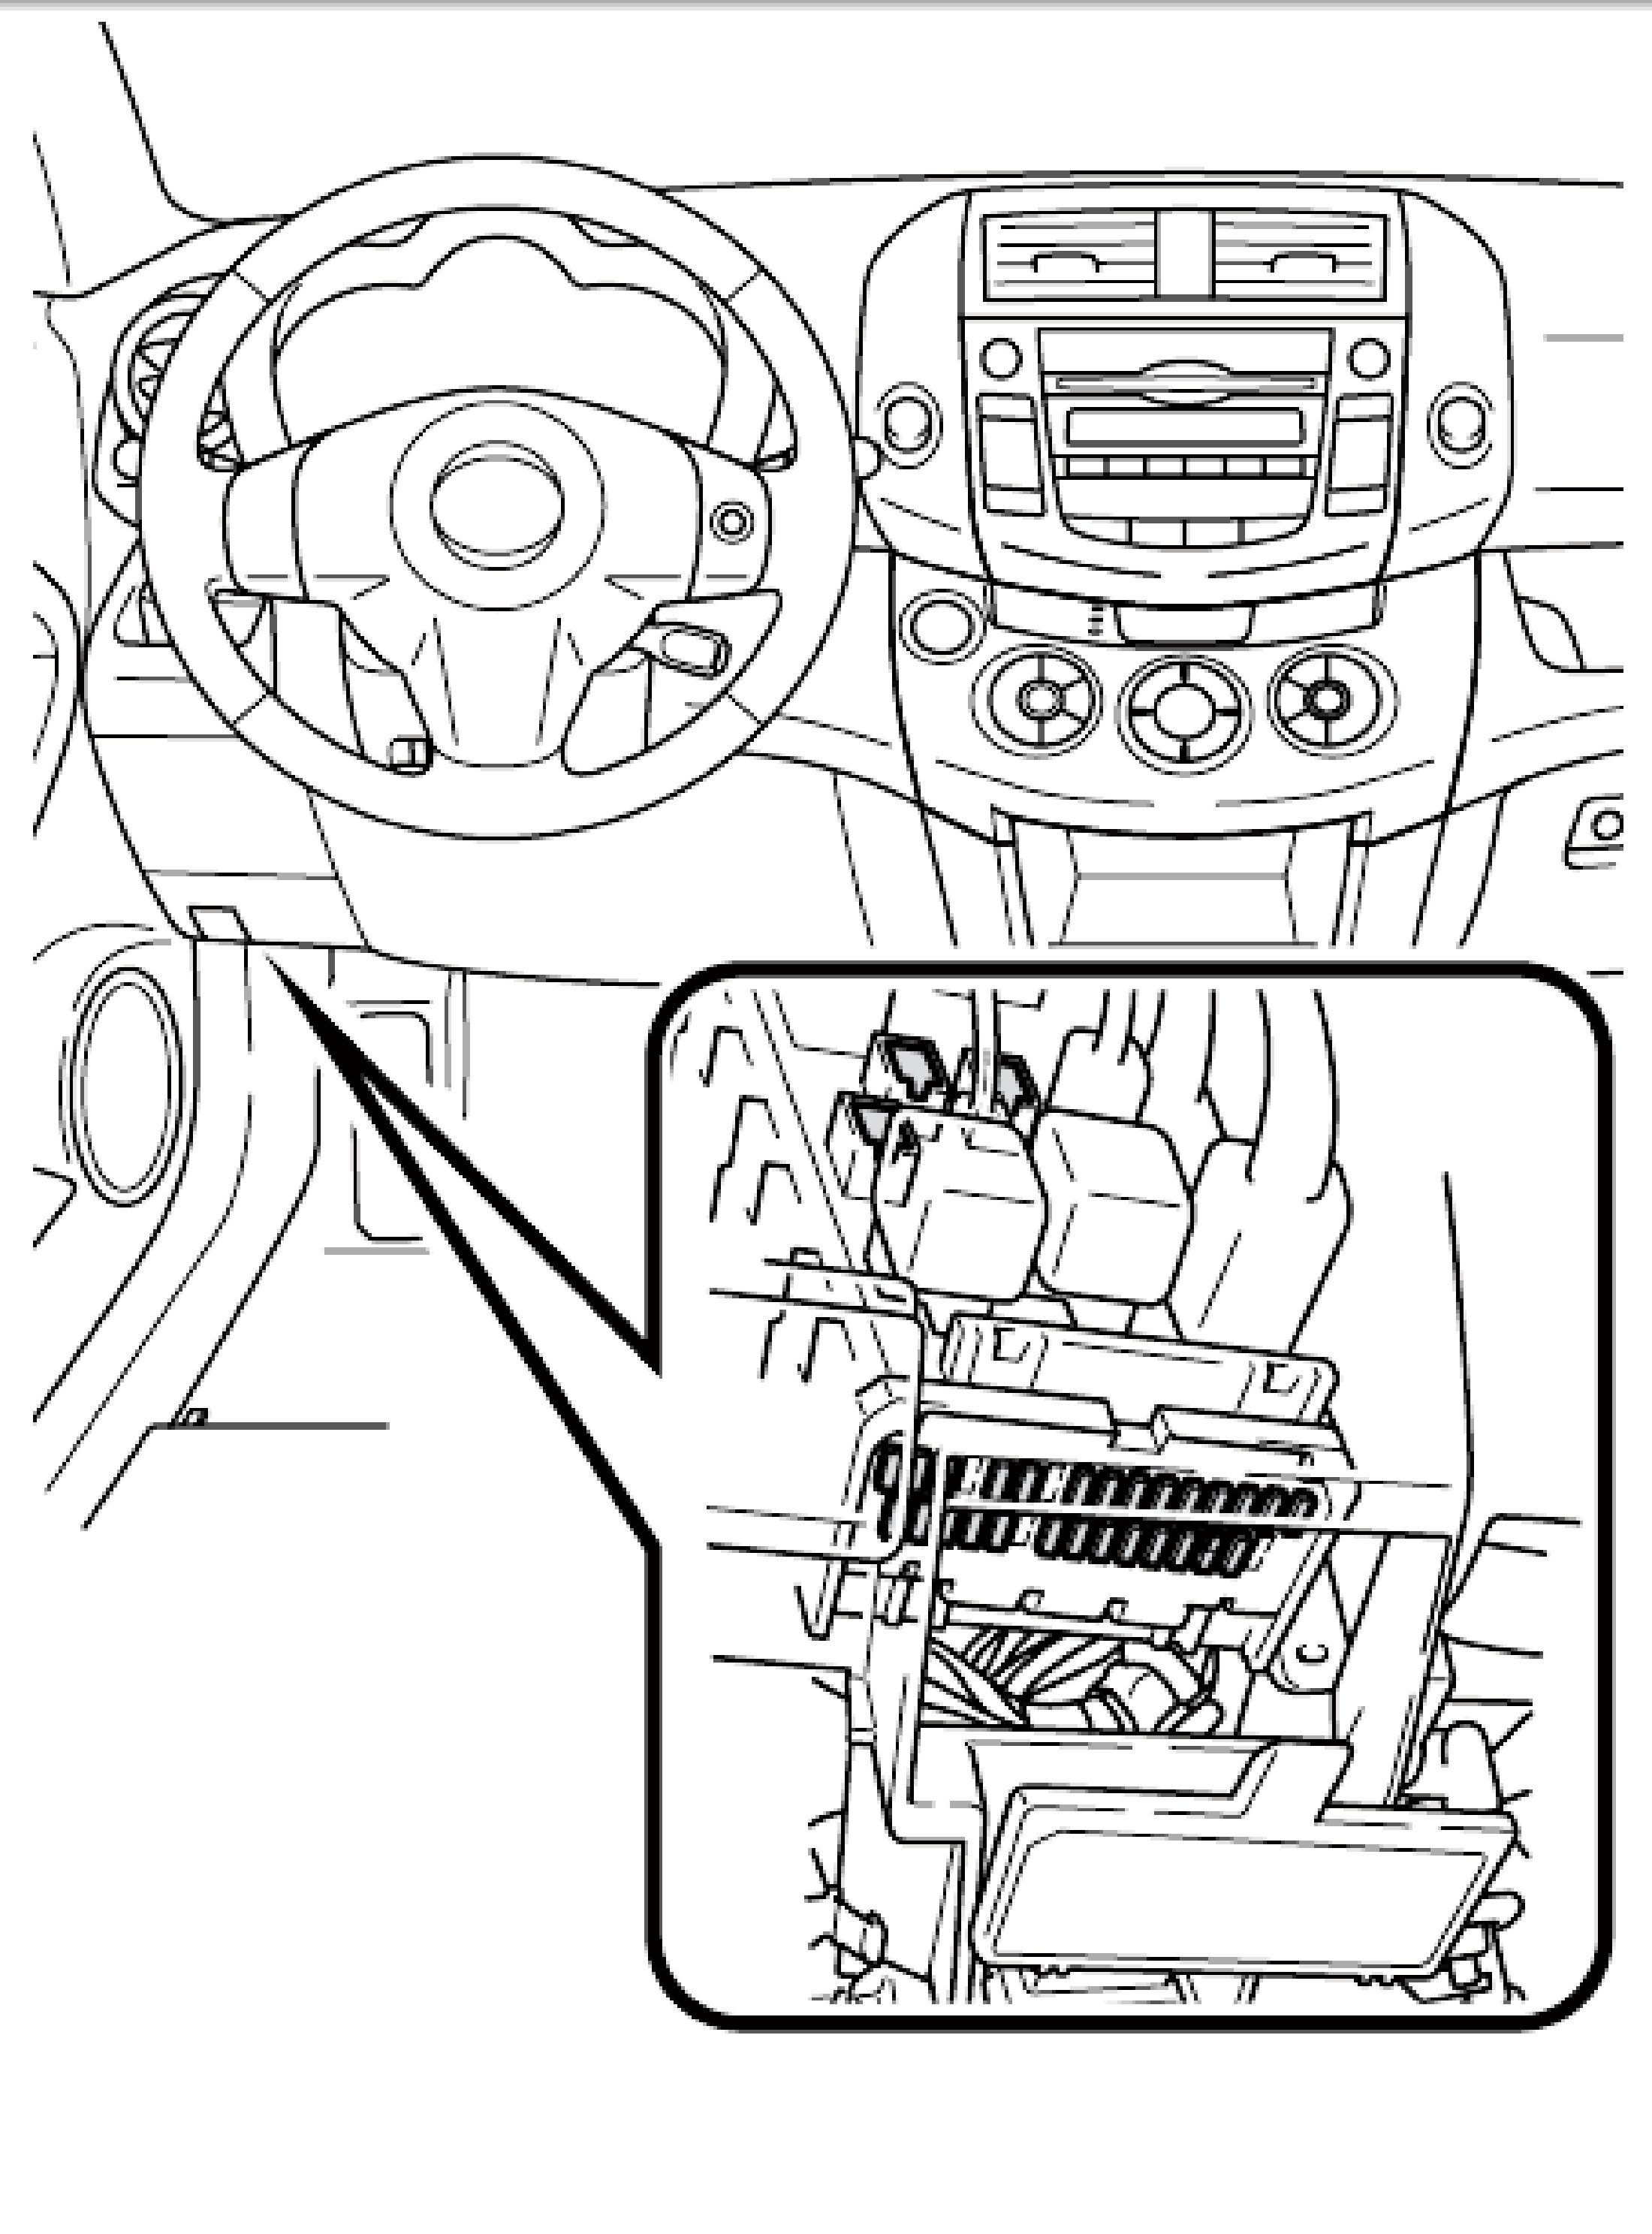 toyota rav4 fuse box location GCKEDBA rav4 fuse box location 1998 wiring diagrams instruction 1996 toyota corolla fuse box location at n-0.co